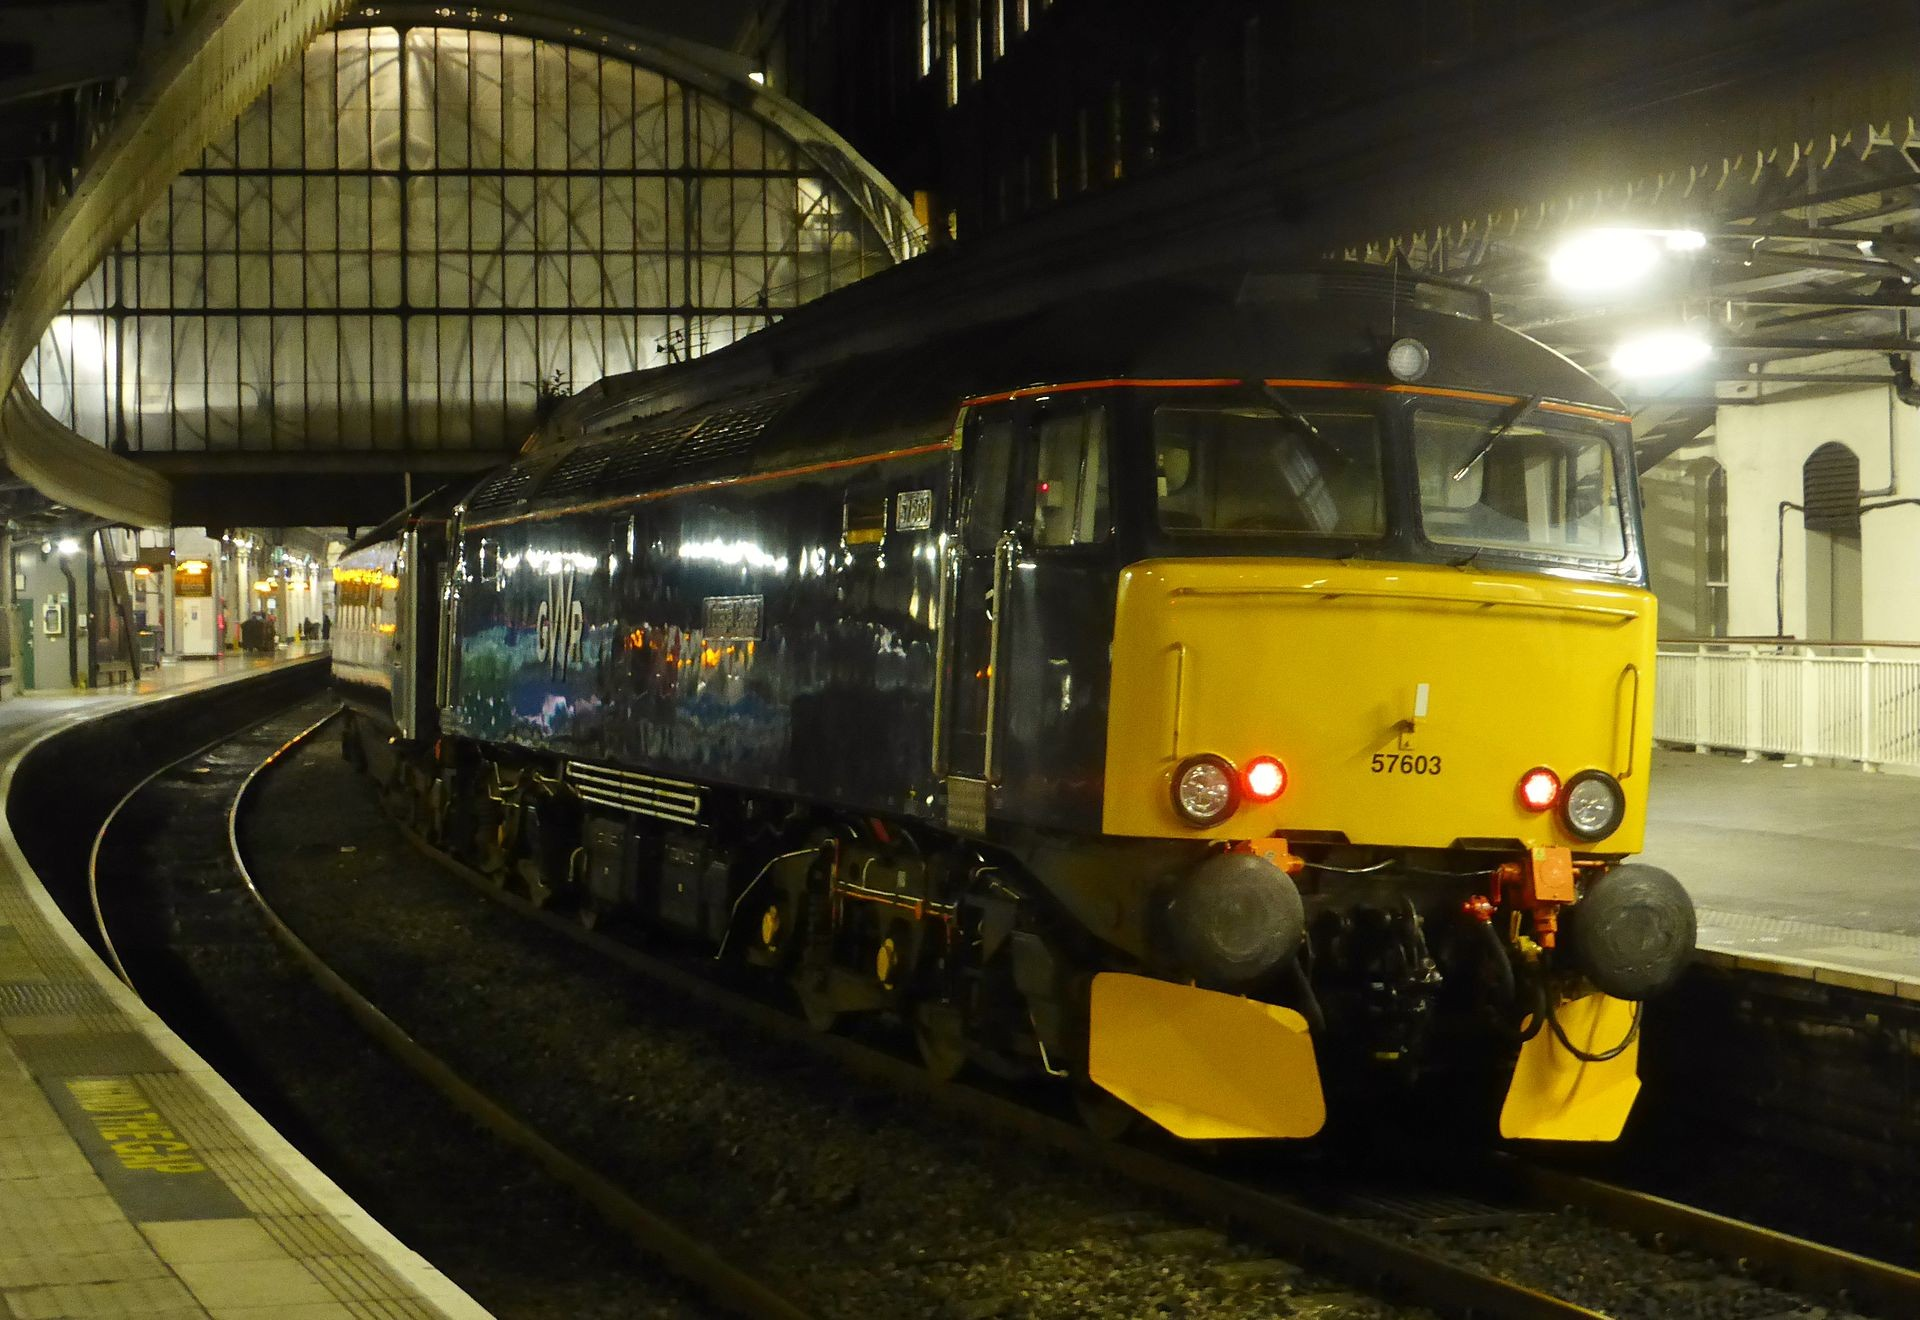 Night Riviera sleeper at London Paddington - Credit: Train Photos